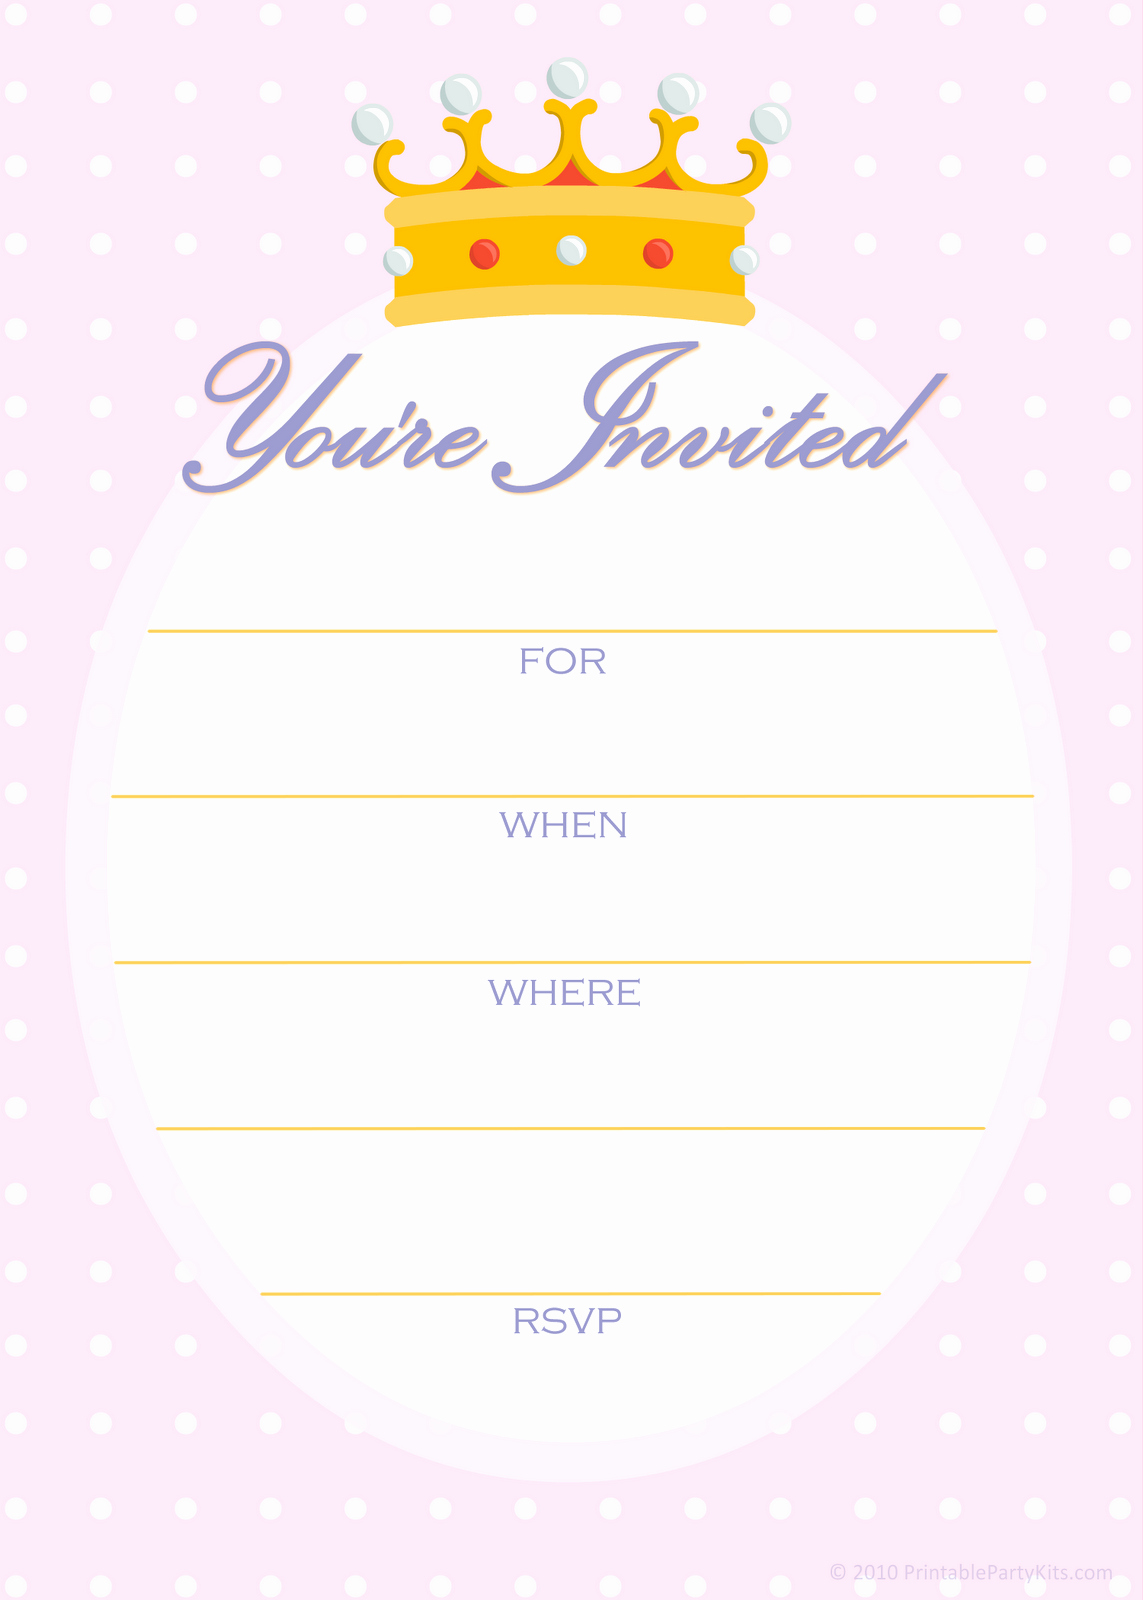 Free Printable Invitations Templates Beautiful Free Printable Party Invitations Free Invitations for A